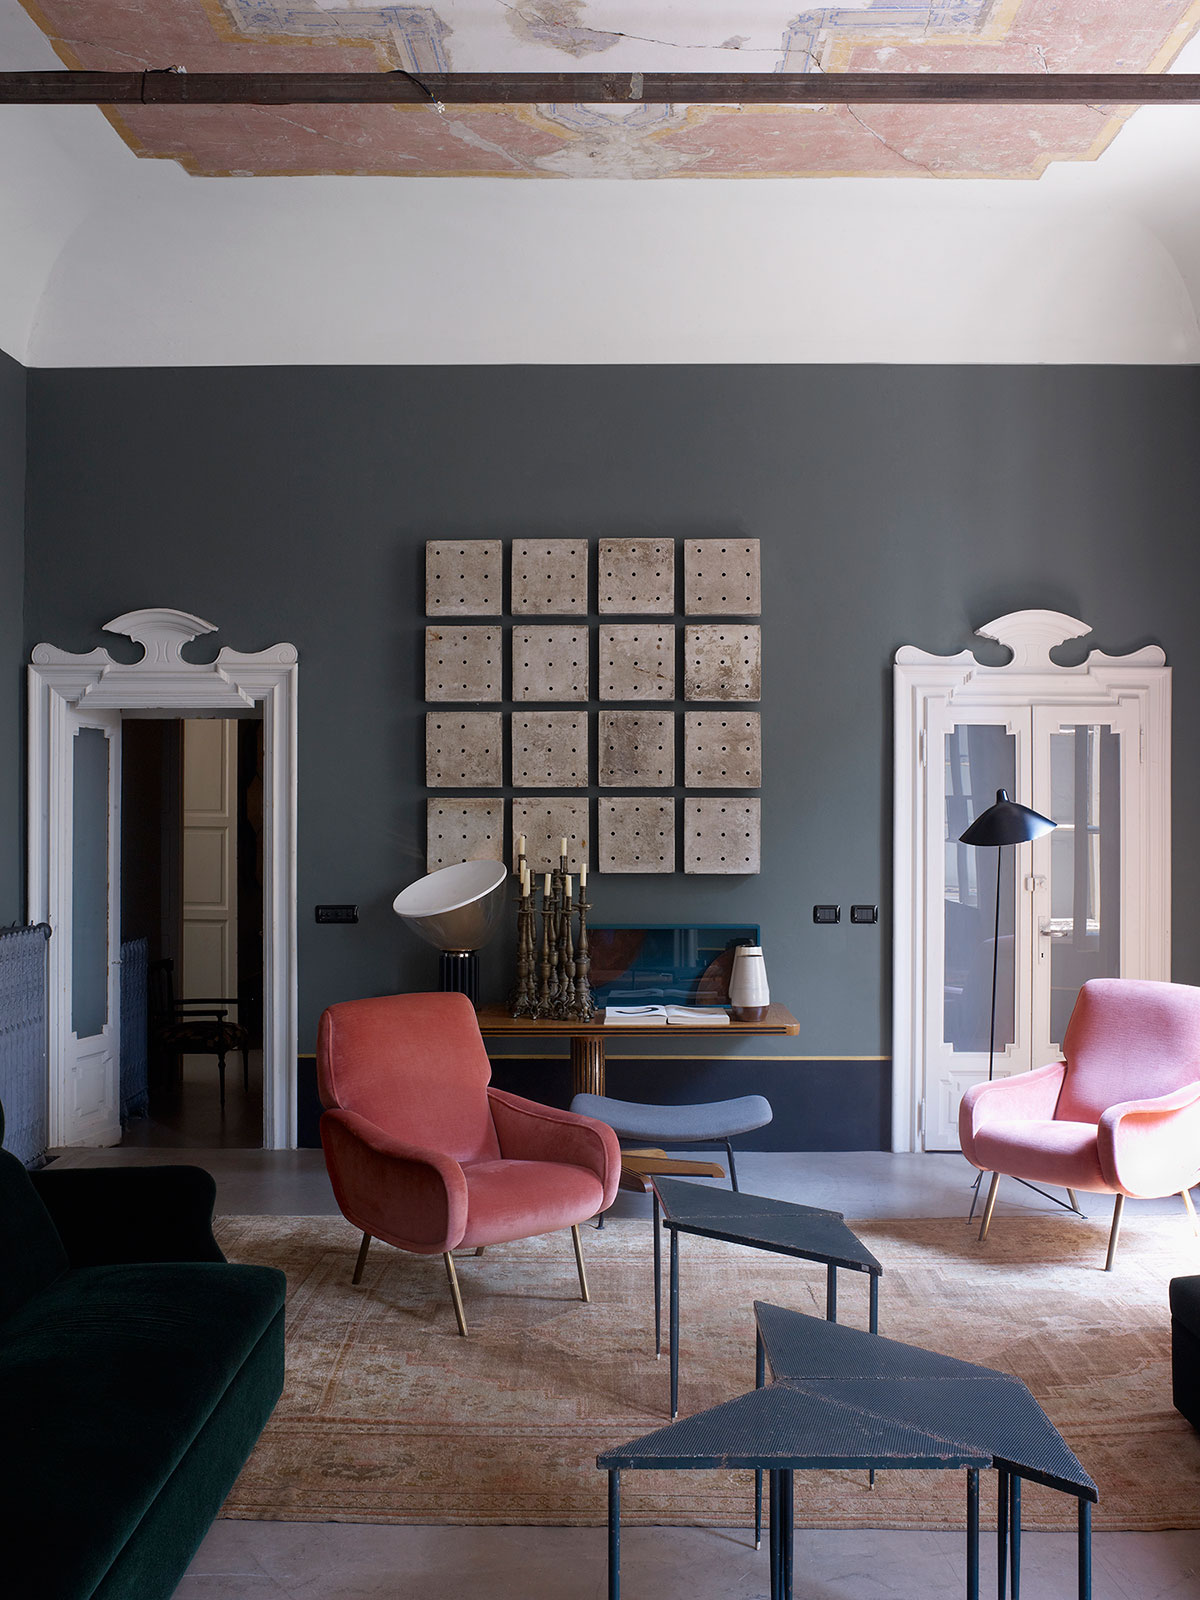 Milan apartment by Dimore Studio. Photo by Henry Bourne | Yellowtrace